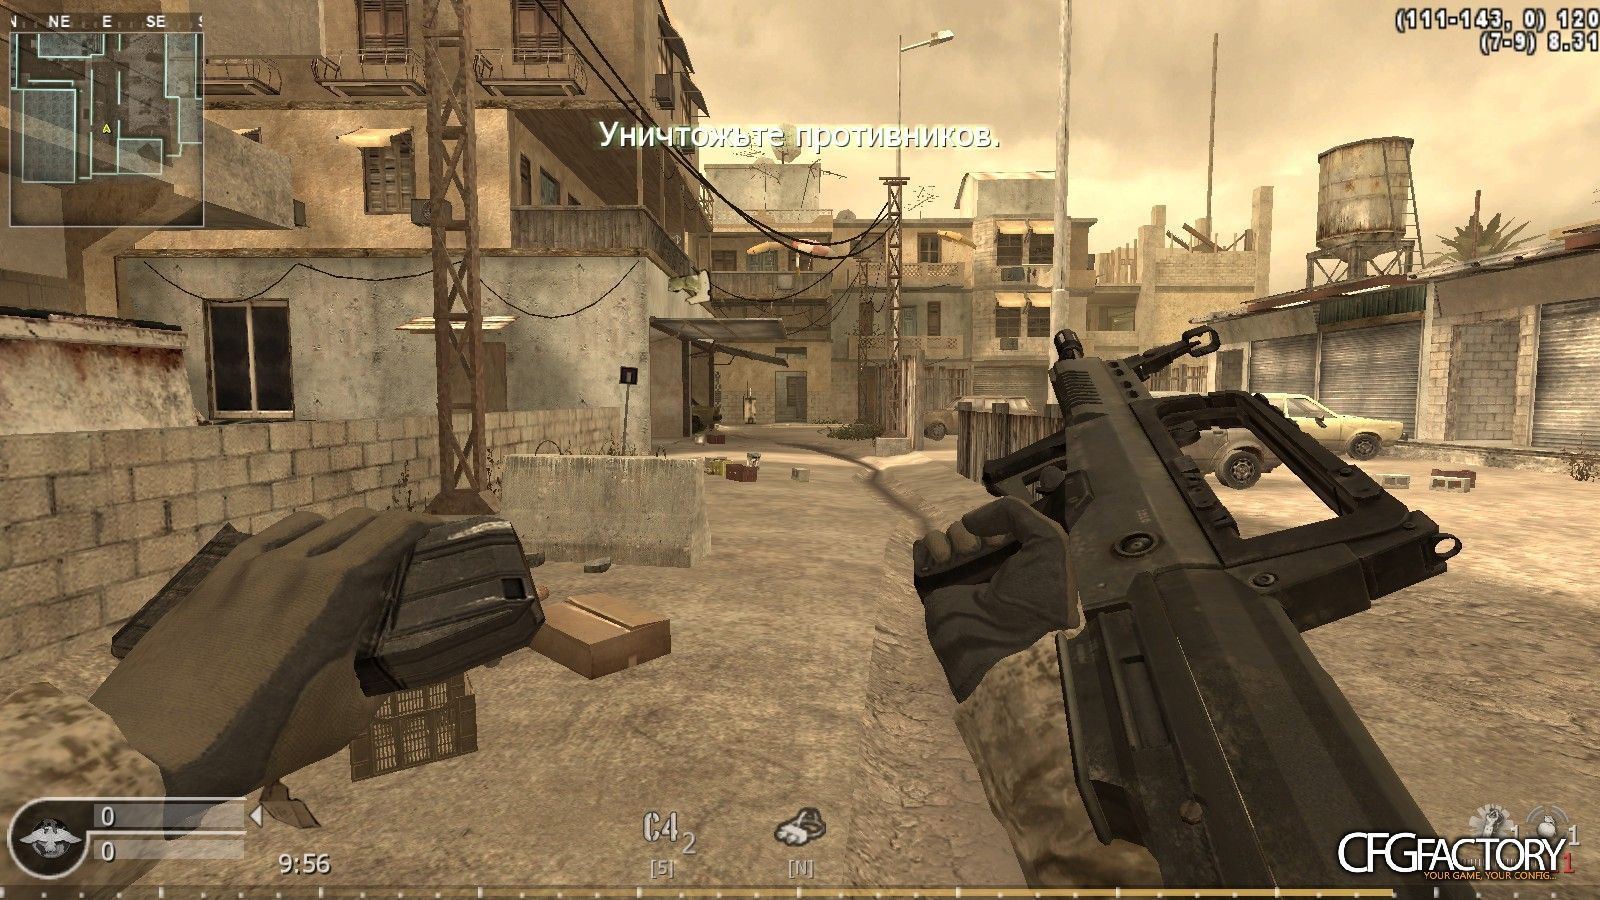 cod4, custom models, type-95 from mw3, t-max